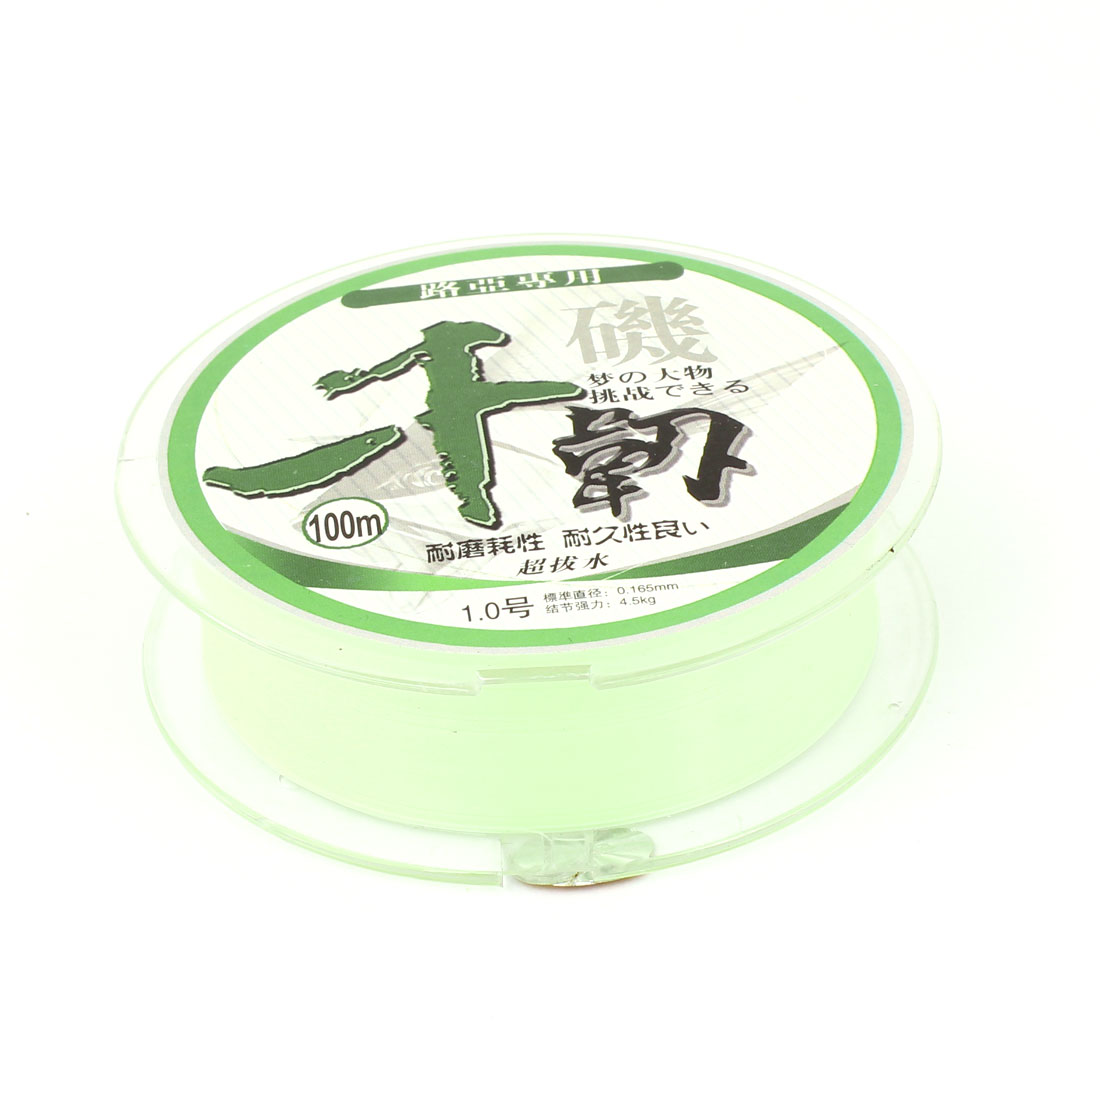 100M 0.165mm Dia Light Green Nylon Abrasion Resistance Fishing Spool Line String